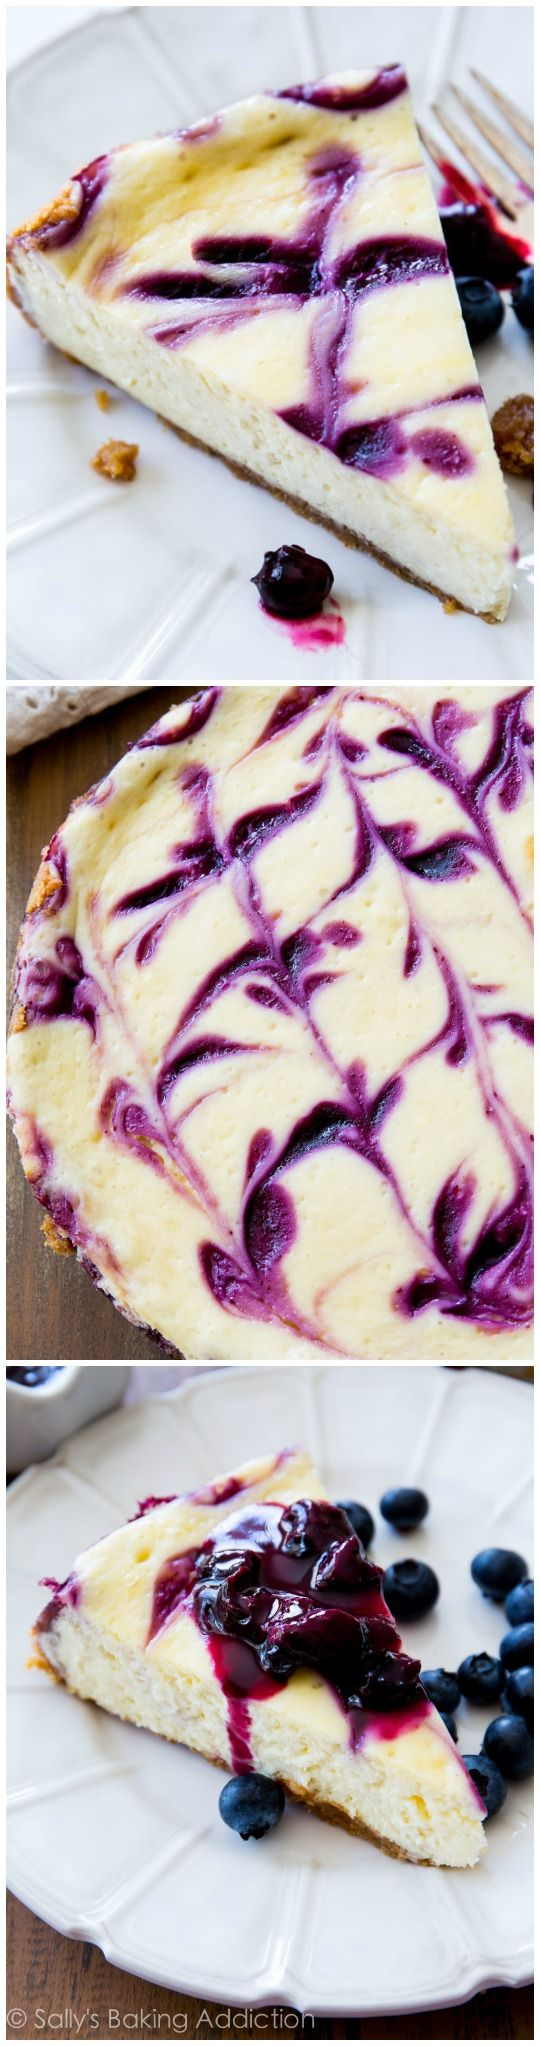 Ultra creamy homemade cheesecake swirled with sweet blueberry sauce. All on top of my favorite buttery graham cracker crust!